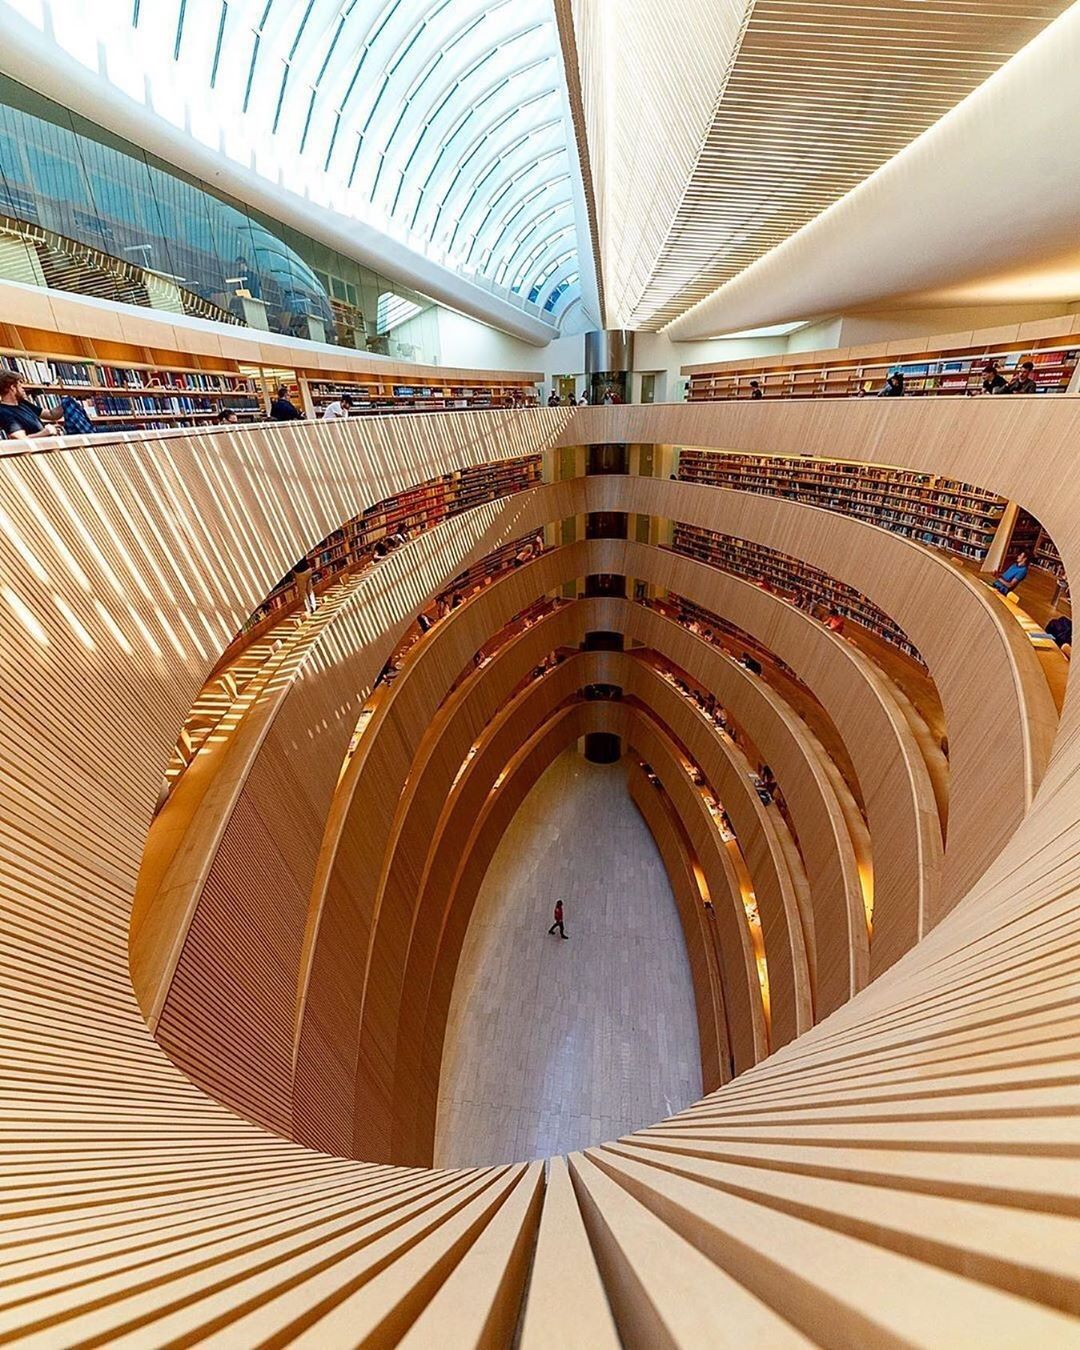 Law Library At University Of Zurich Switzerland Photo By